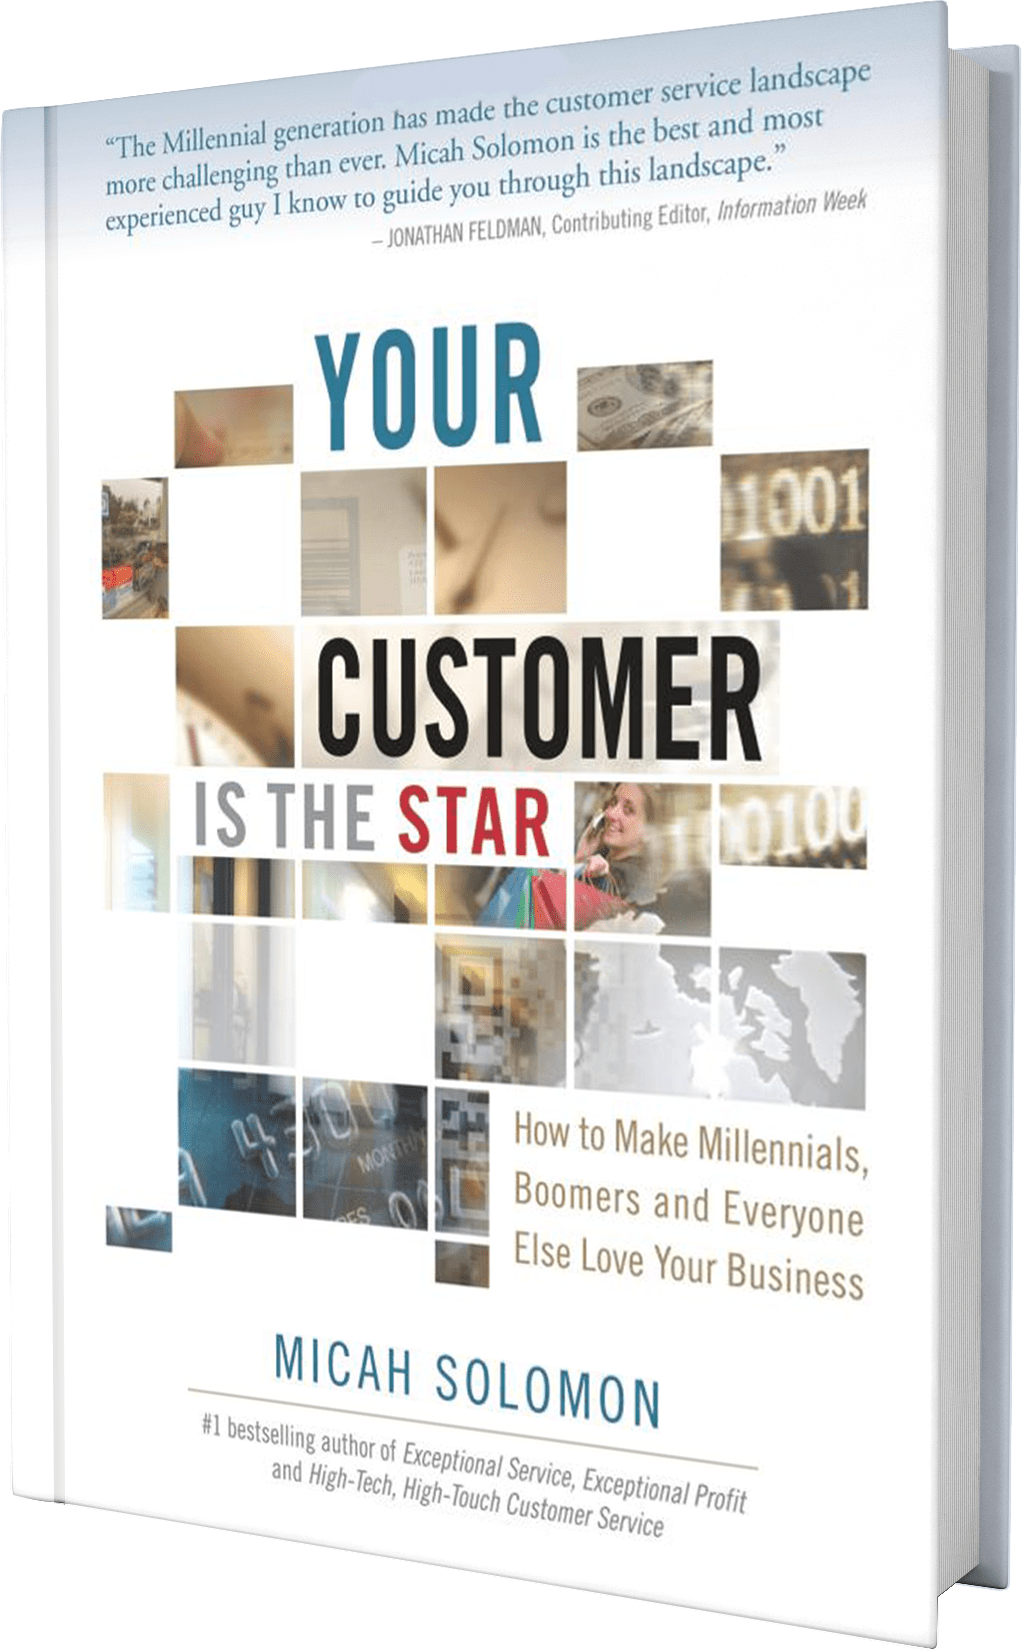 yourcustomer-is-the-star